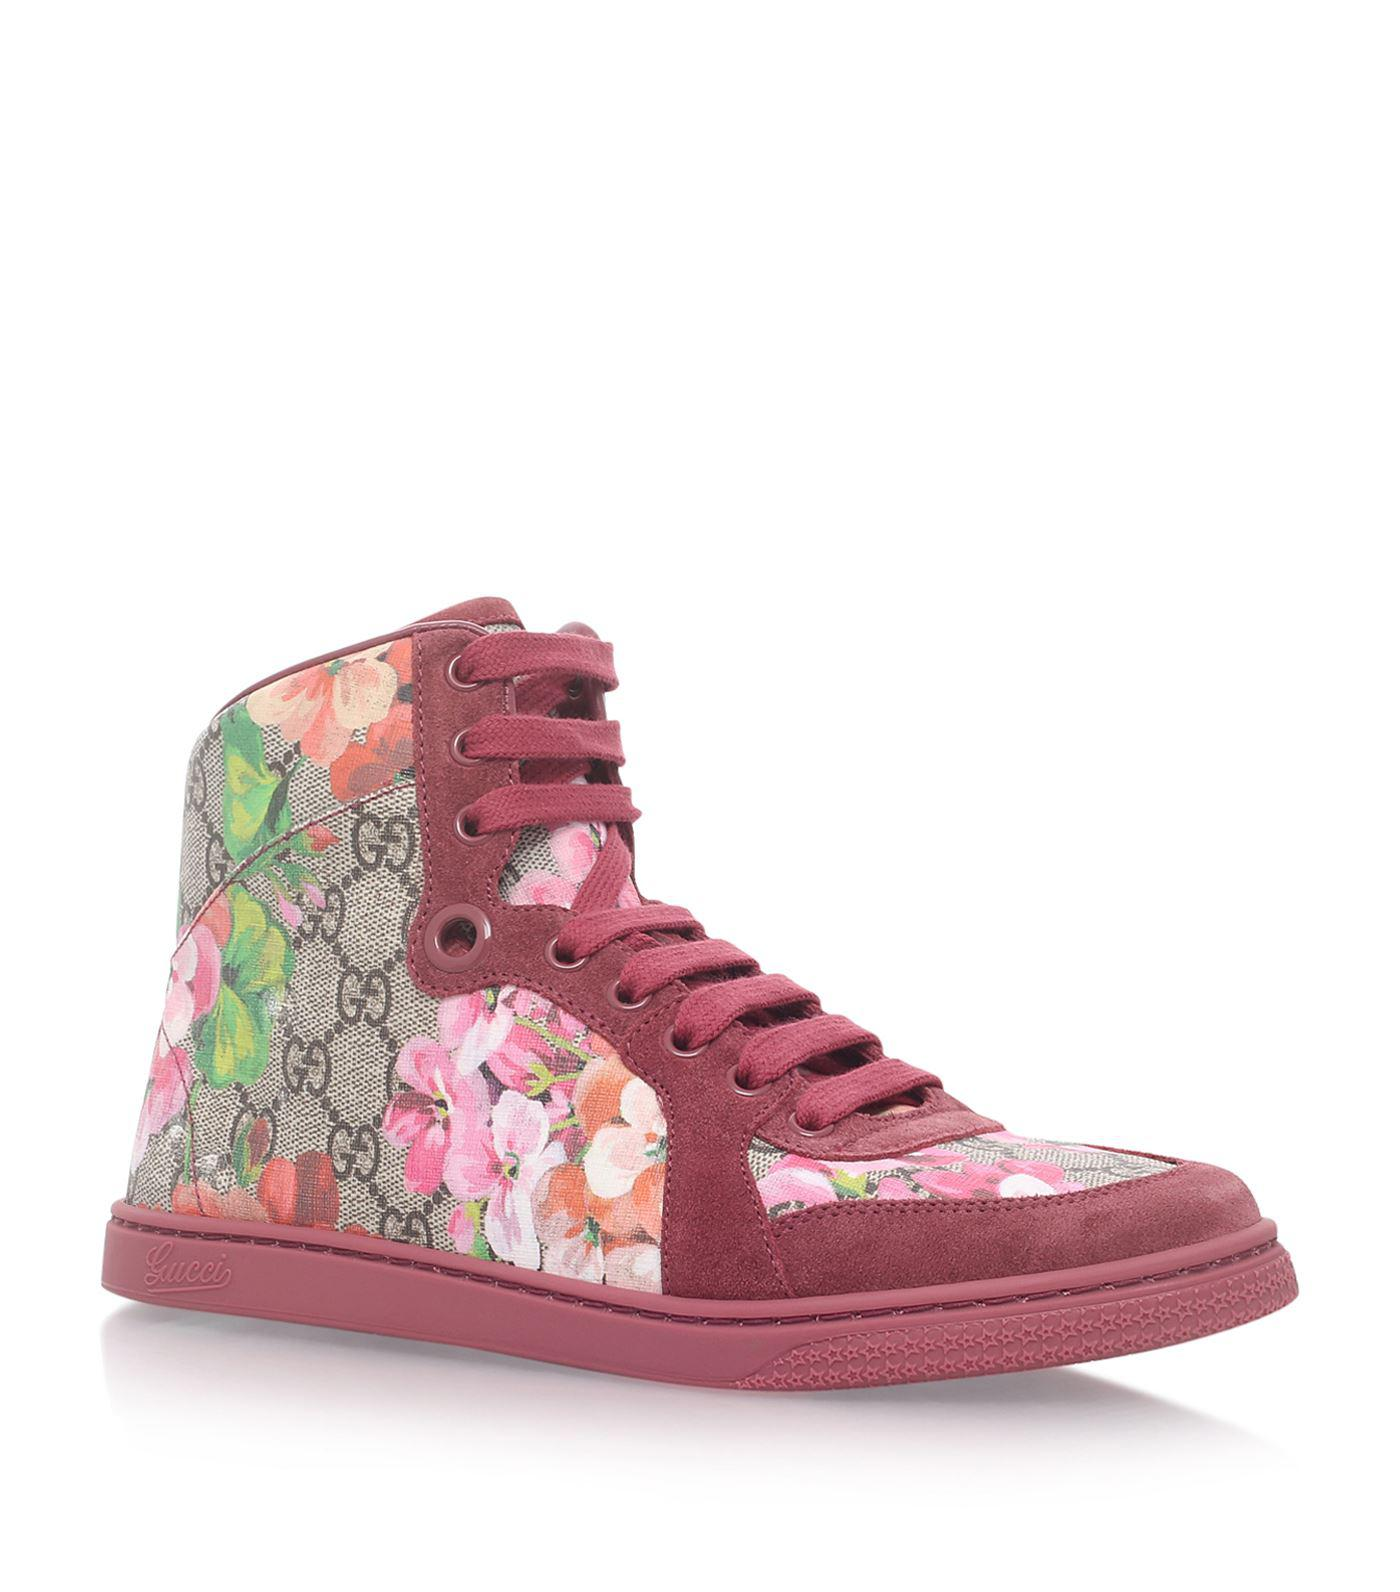 310bf752a09 Gucci Coda High Top Sneakers in Natural - Lyst